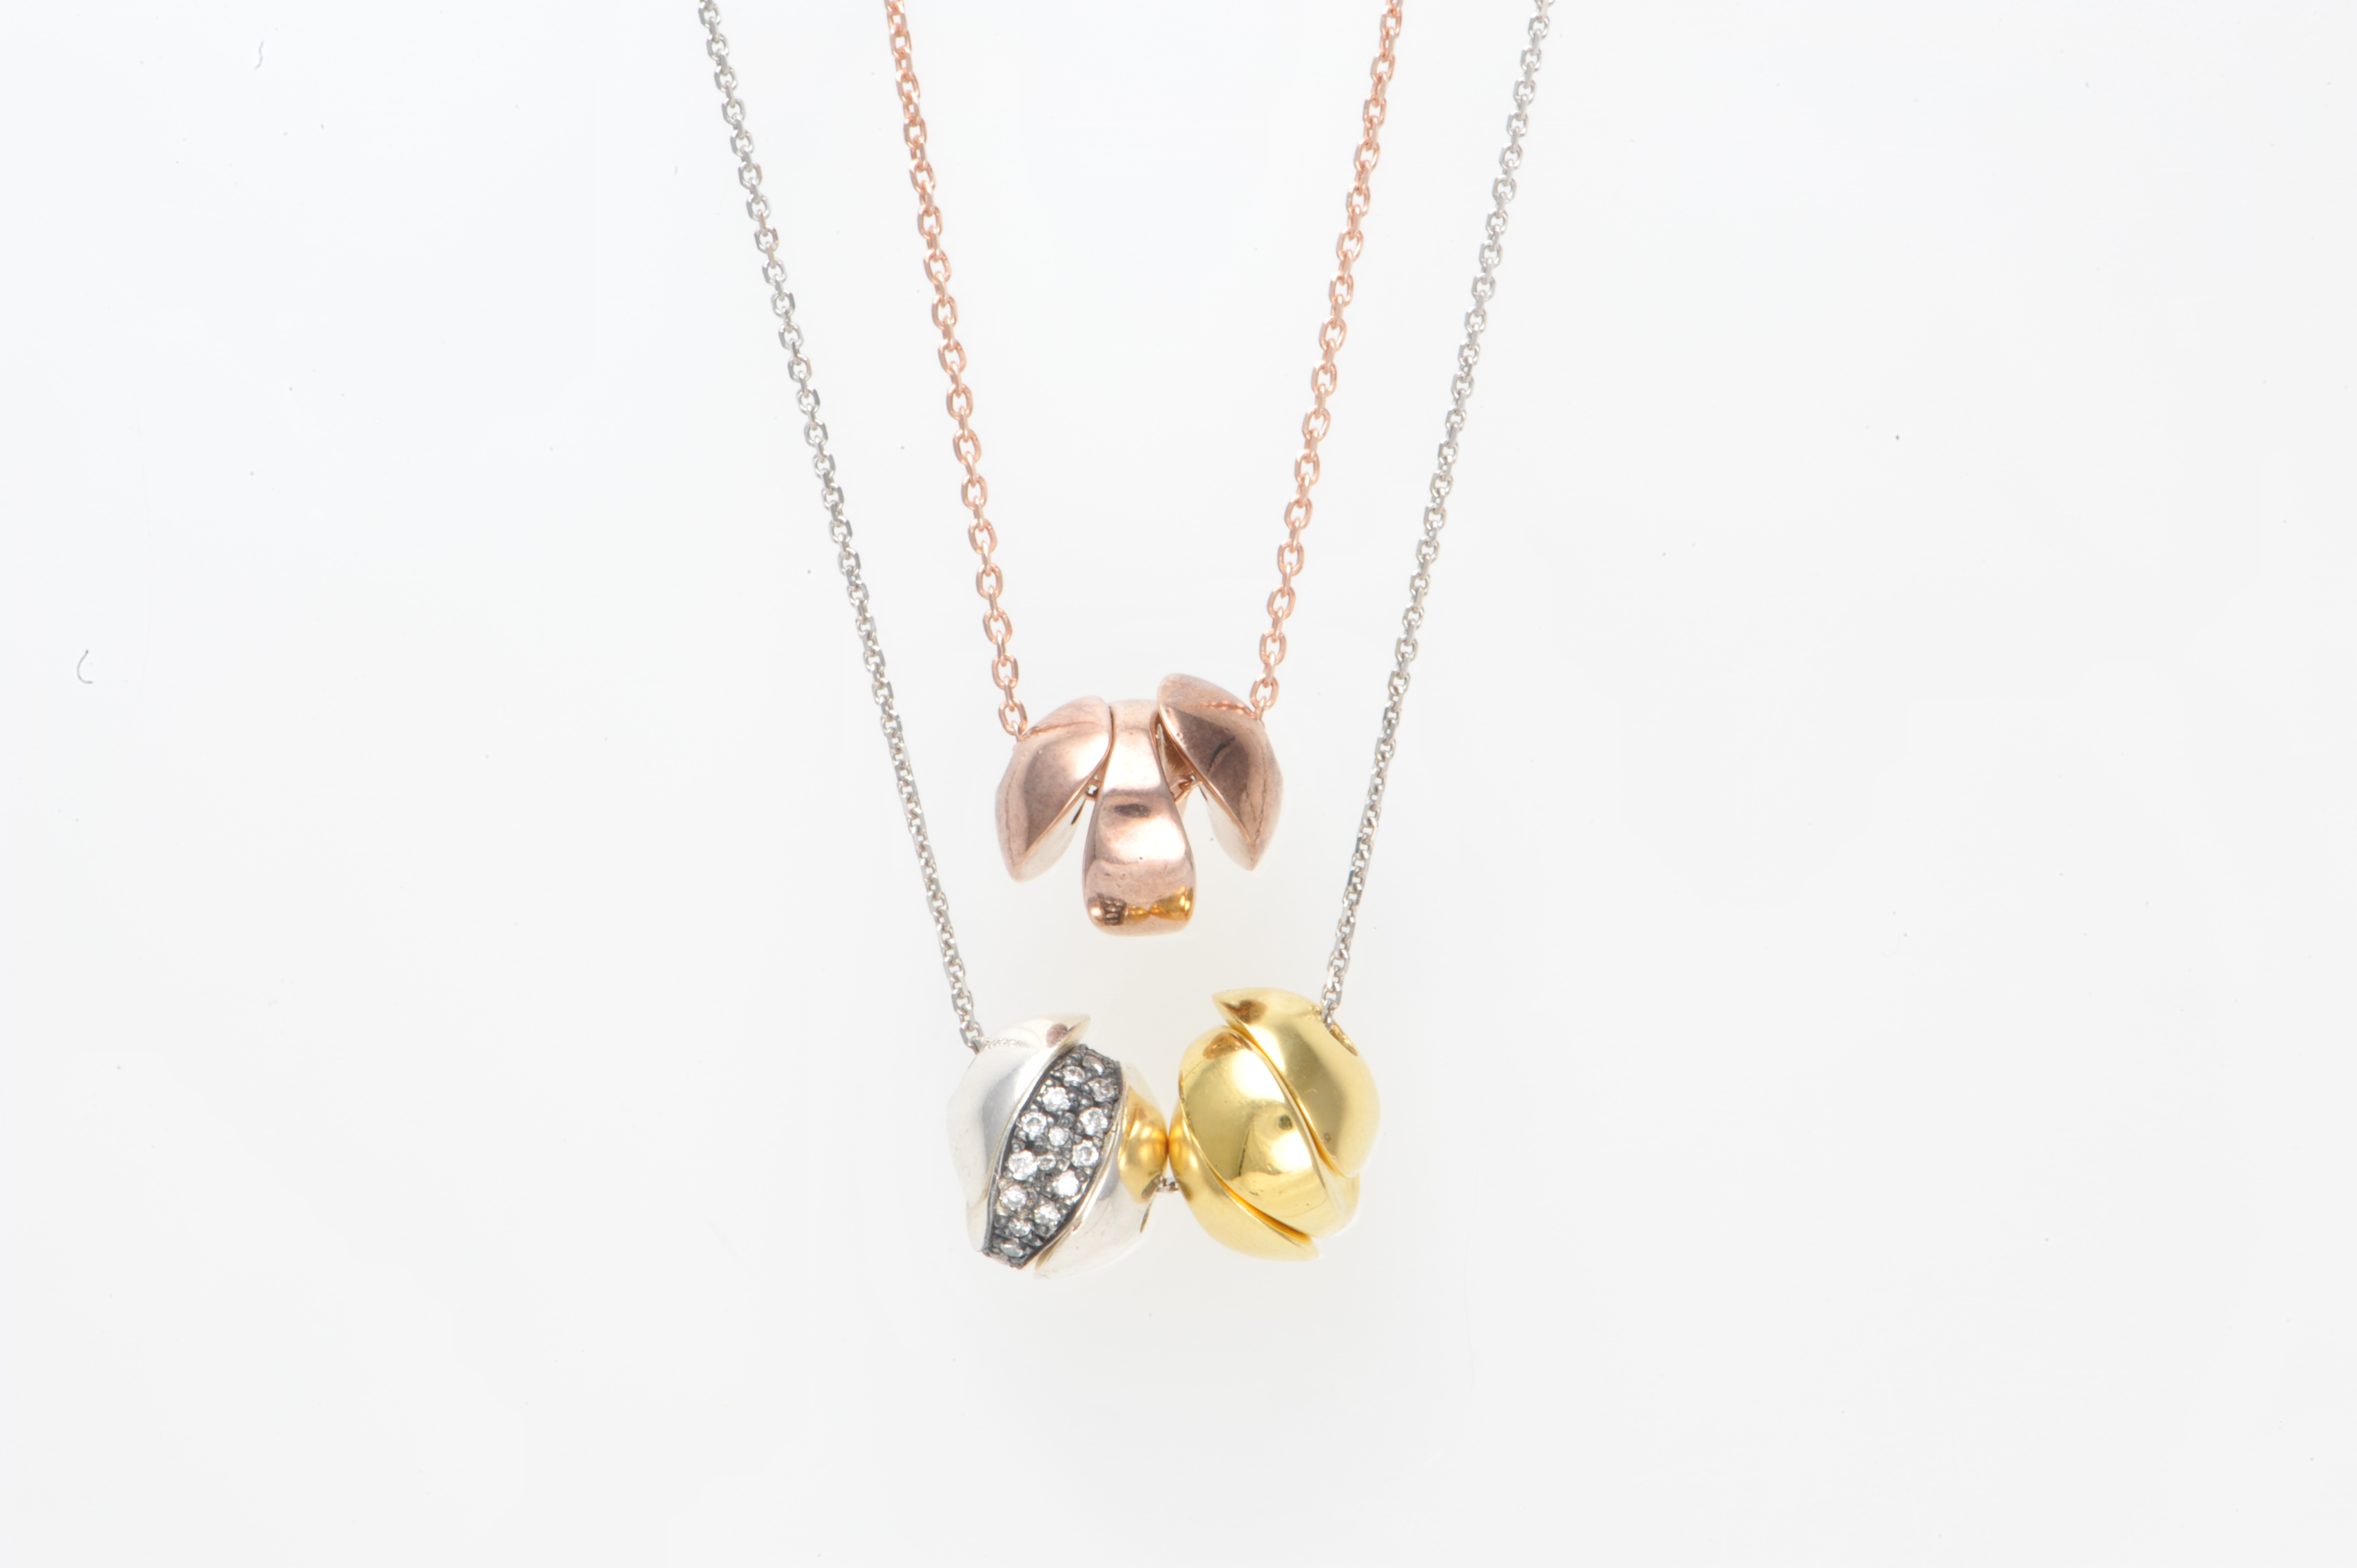 blessed charm jewelry for a cause